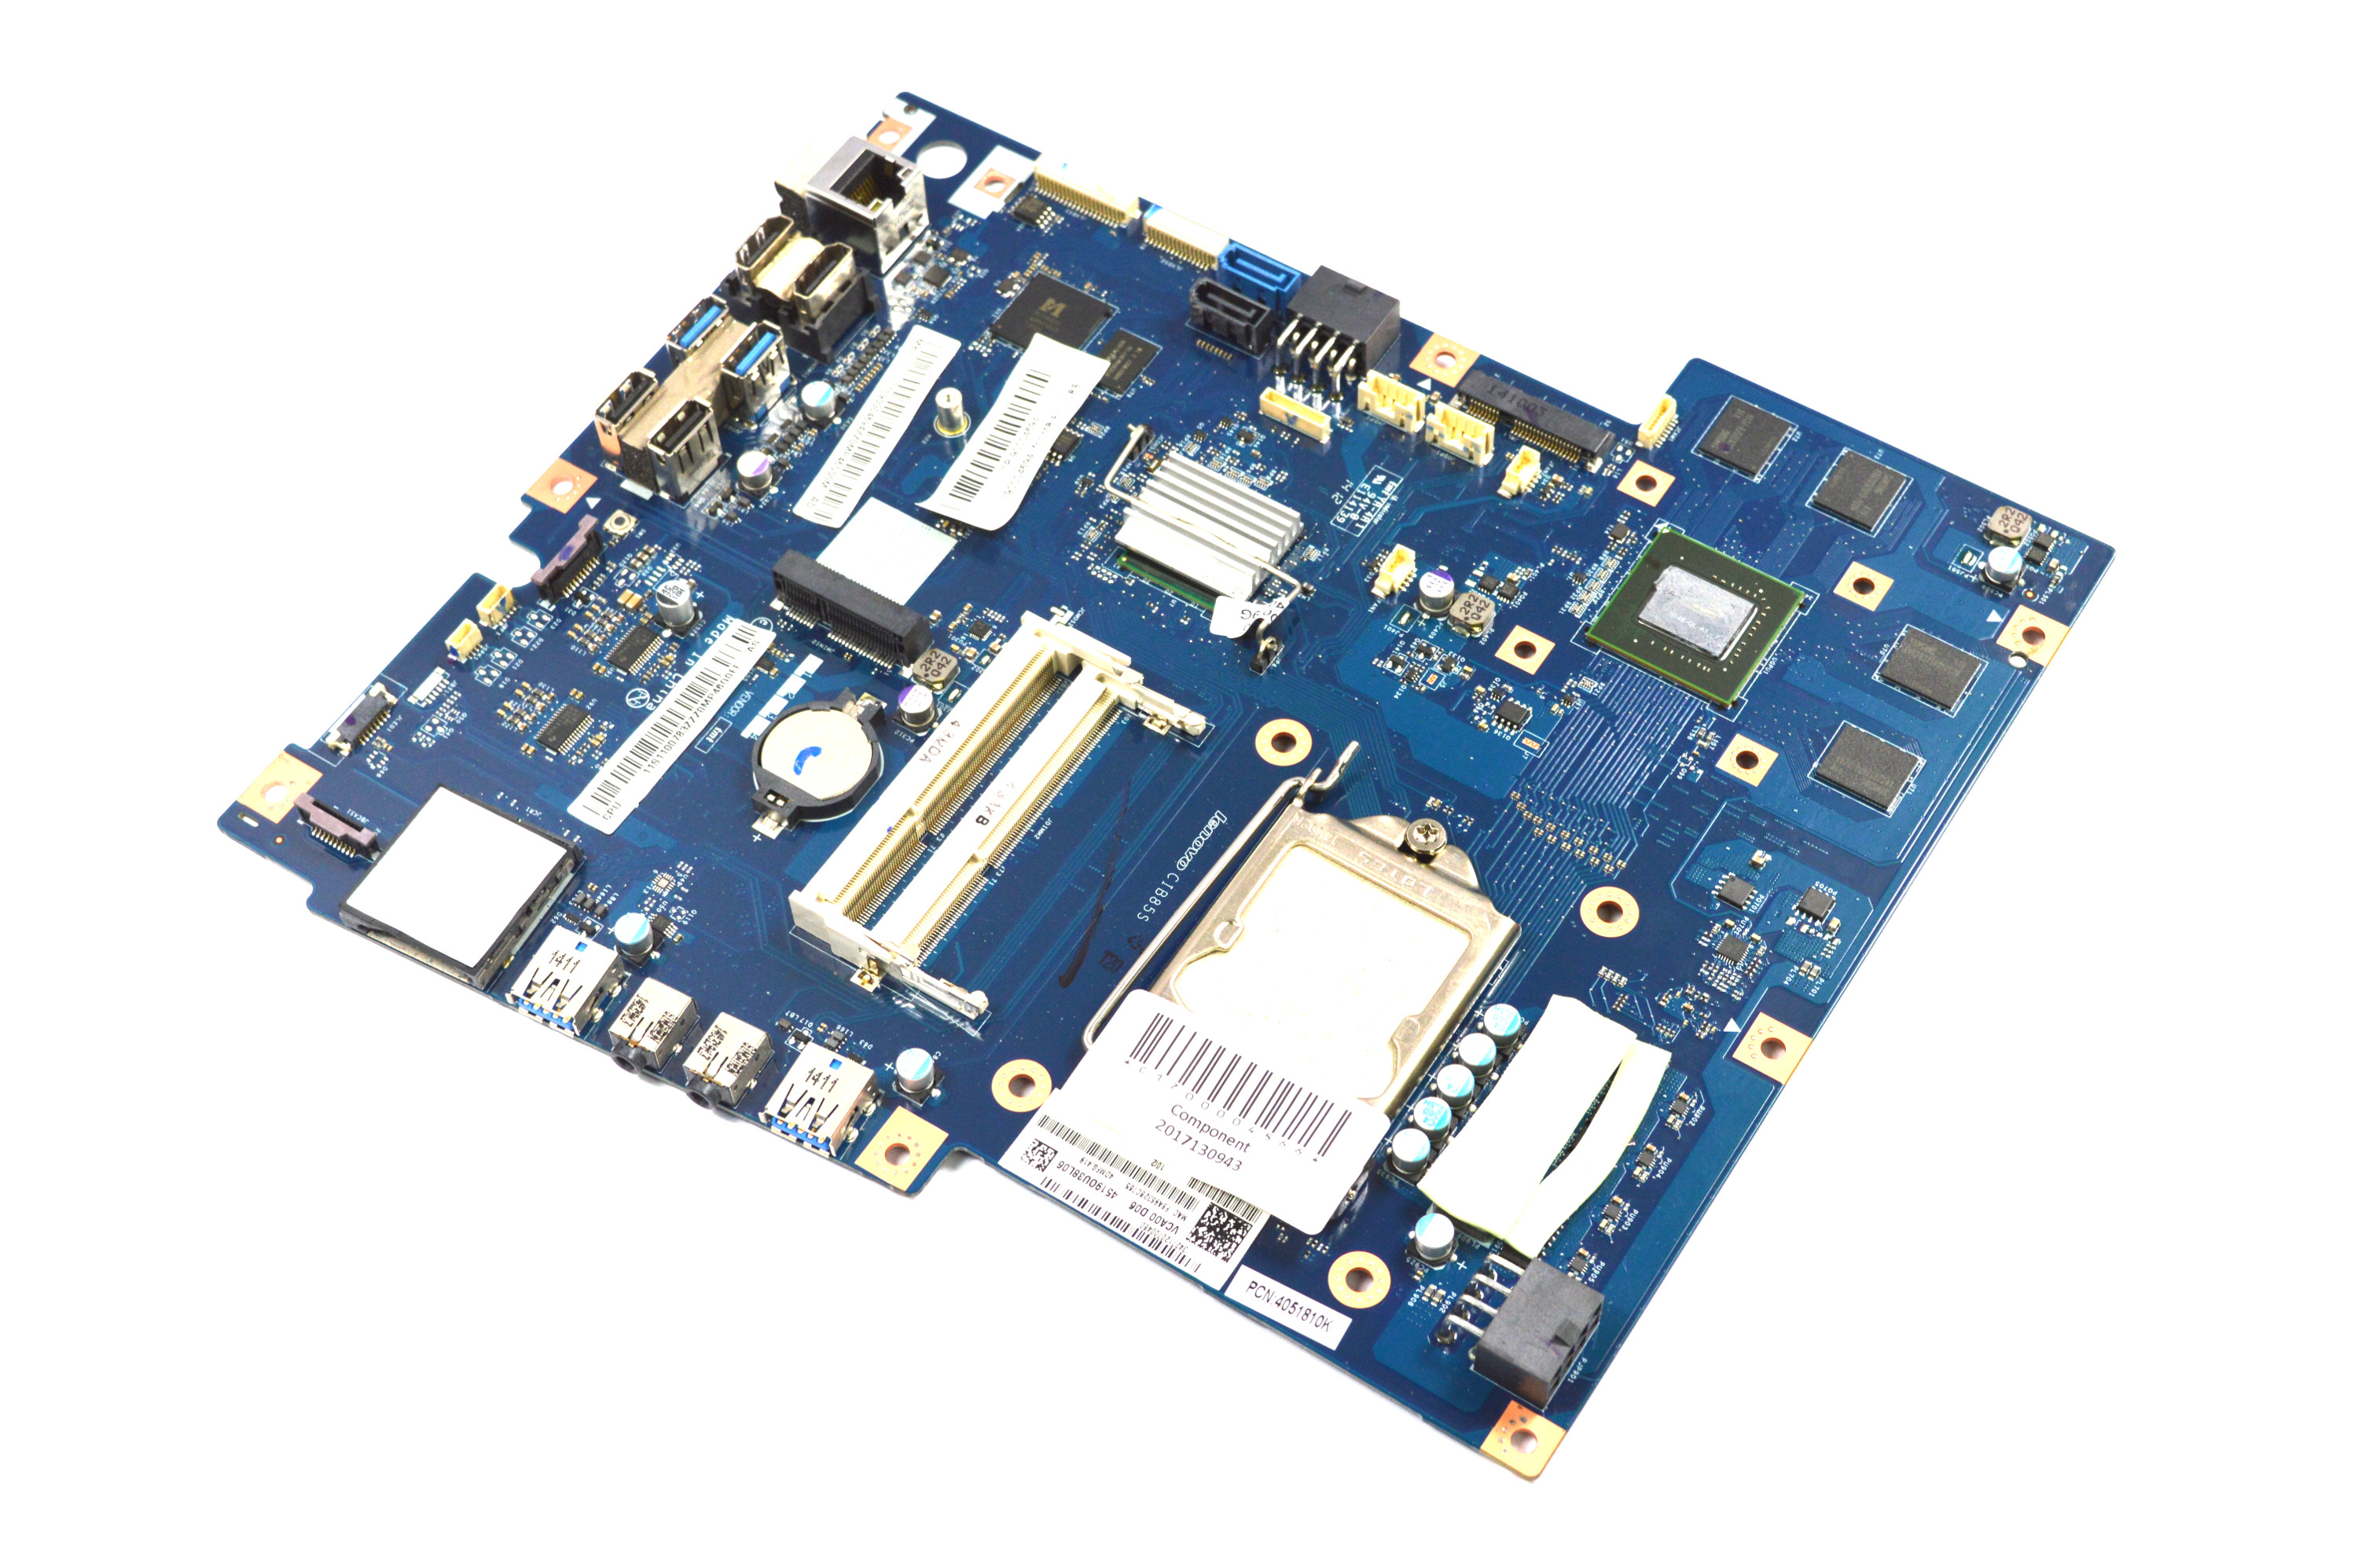 90004694 Lenovo LGA1150 Motherboard /f IdeaCentre B750 AIO PC